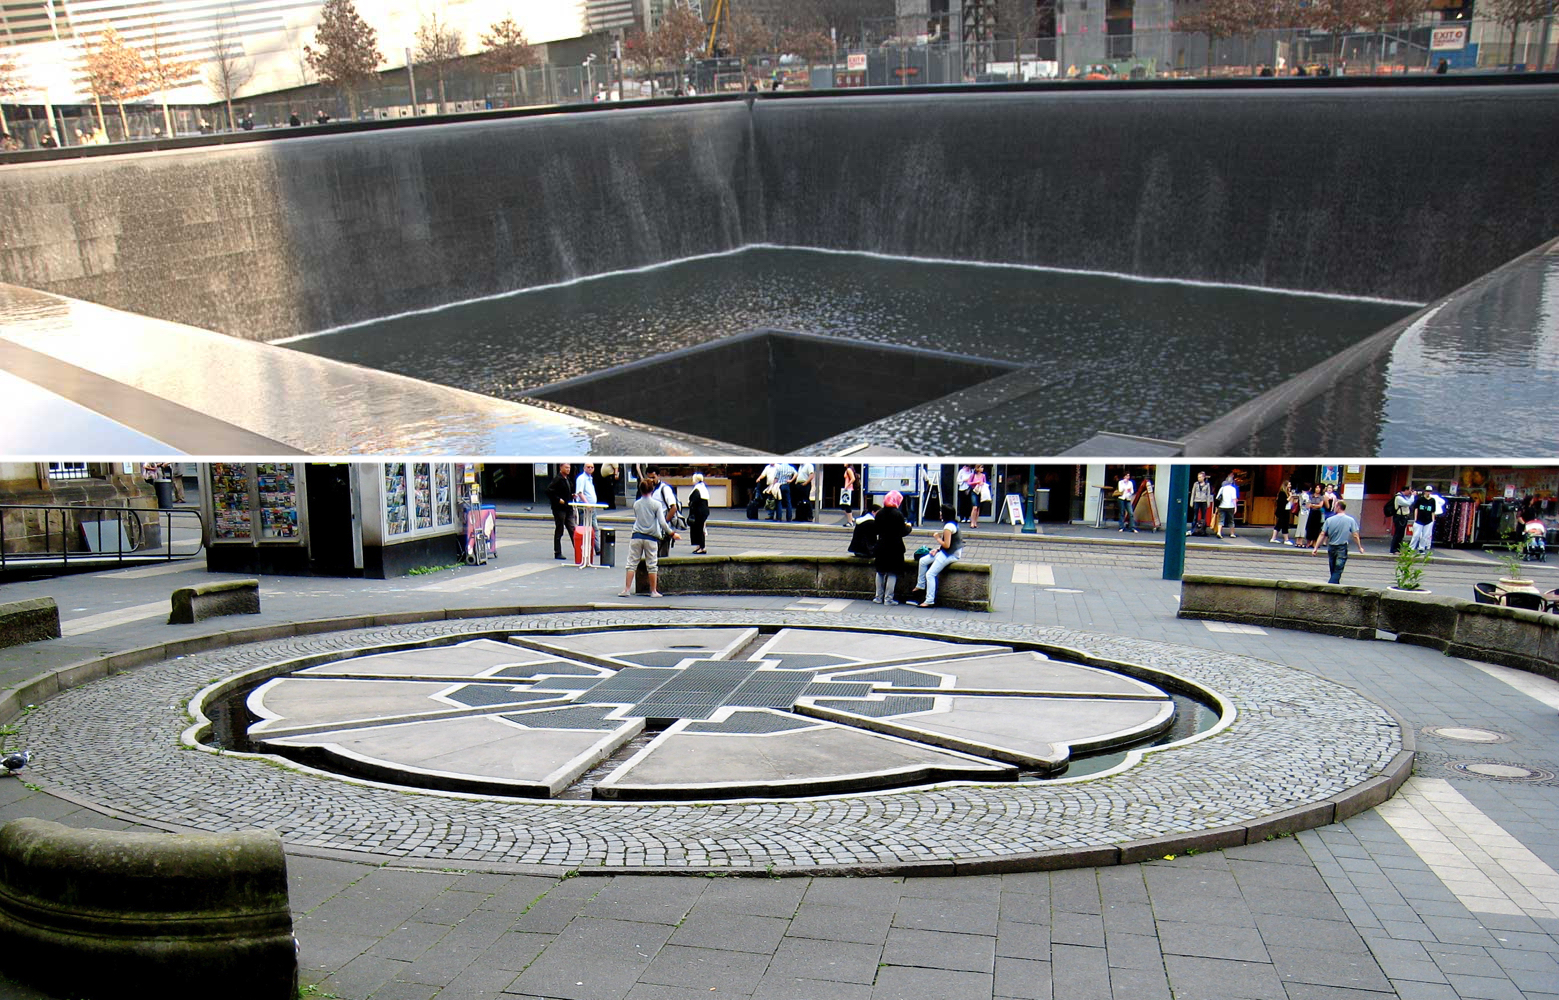 Top: The 9/11 memorial in New York (Photo: Mitchell Zimmerman). Bottom: The Kassel Fountain memorial in Kassel, Germany. (Photo: Horst Hoheisel)